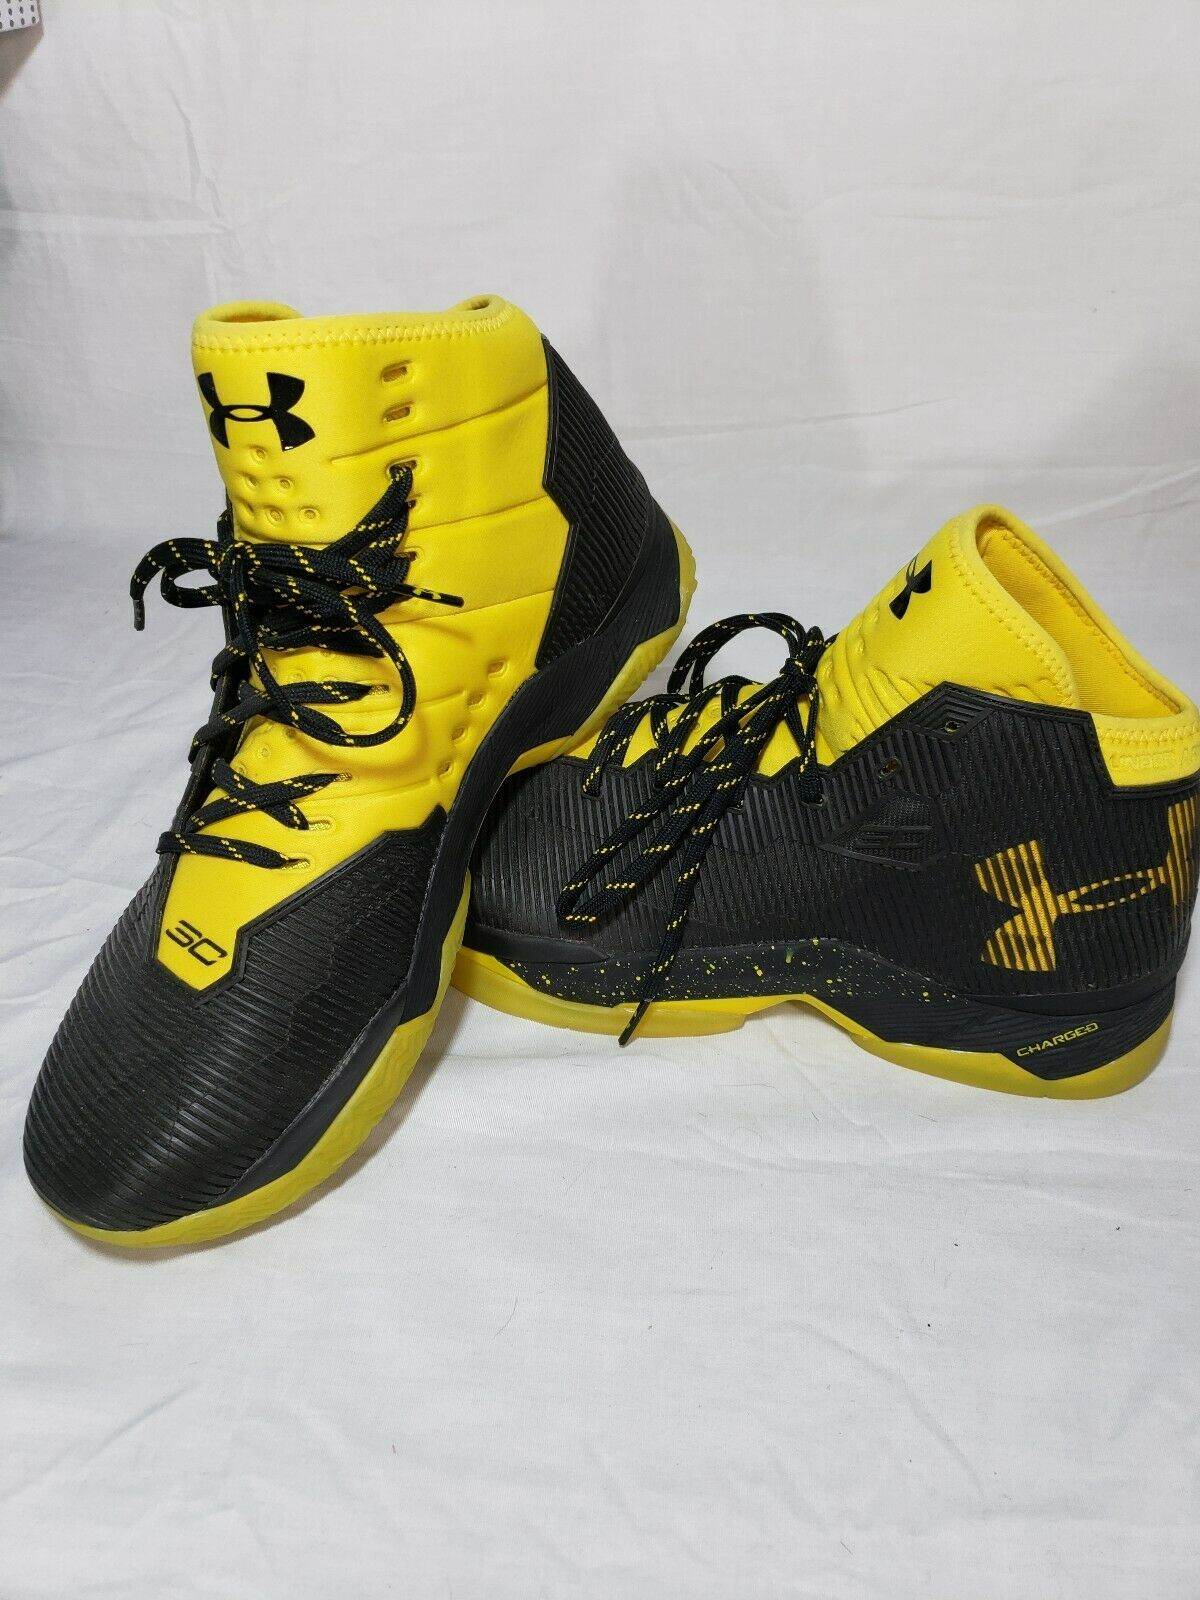 watch e4e59 9a061 New Under Armour Stephen Curry 2.5 Yellow and Black Size ...